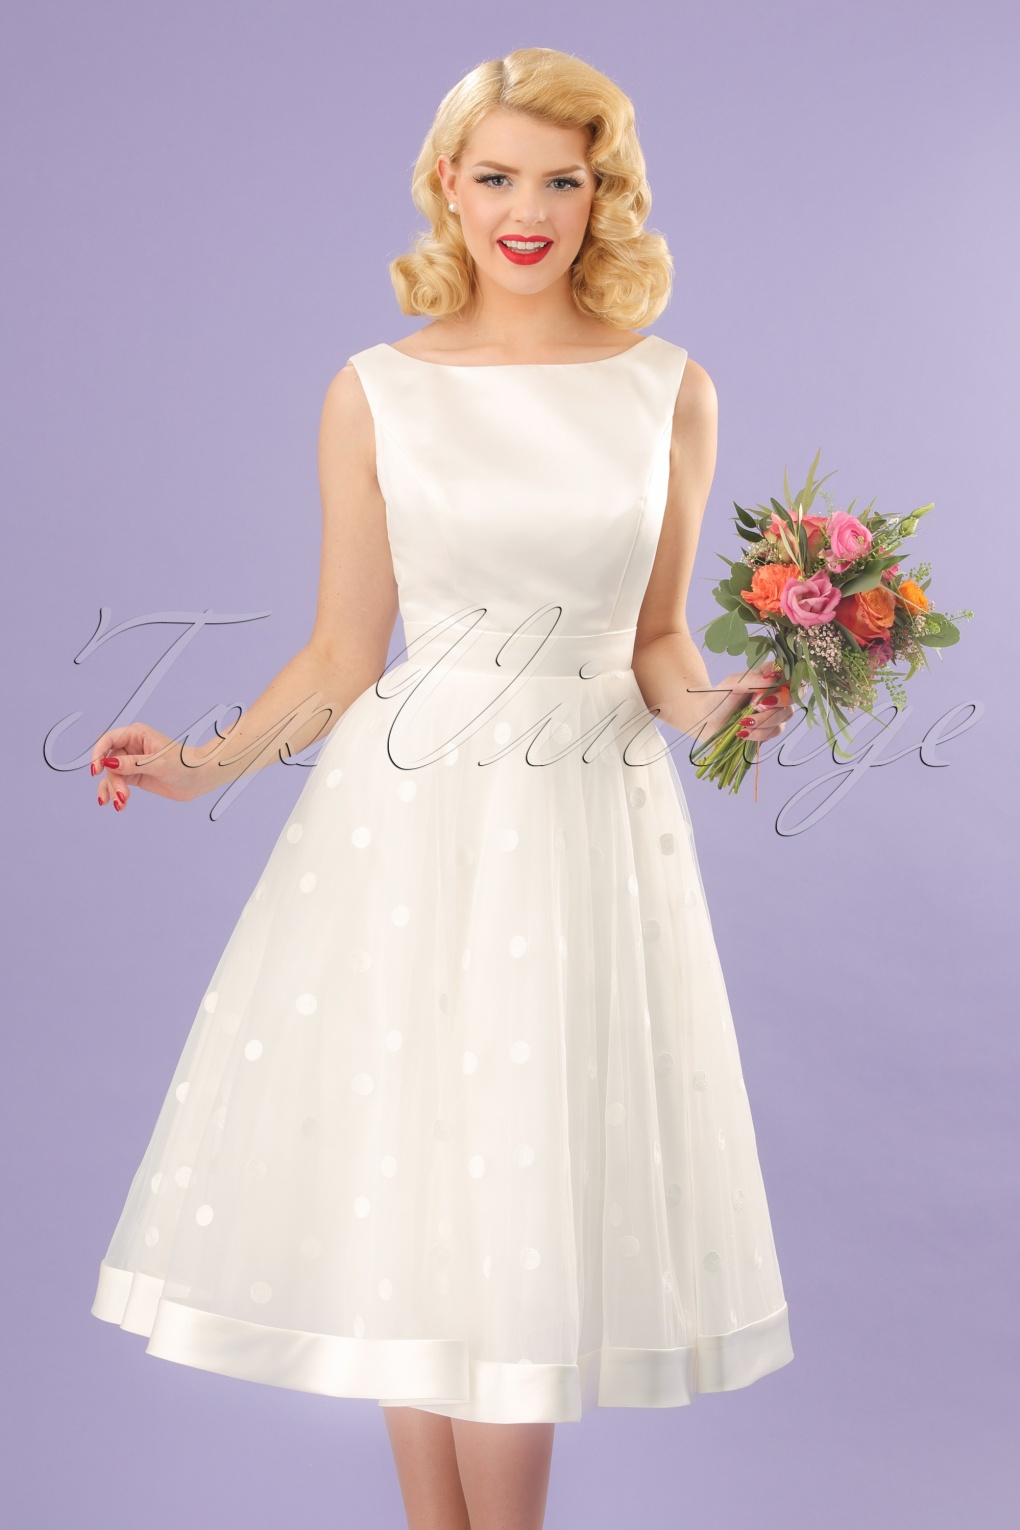 Vintage Inspired Wedding Dress | Vintage Style Wedding Dresses 50s Meagan Polkadot Bridal Gown in Ivory White £345.48 AT vintagedancer.com